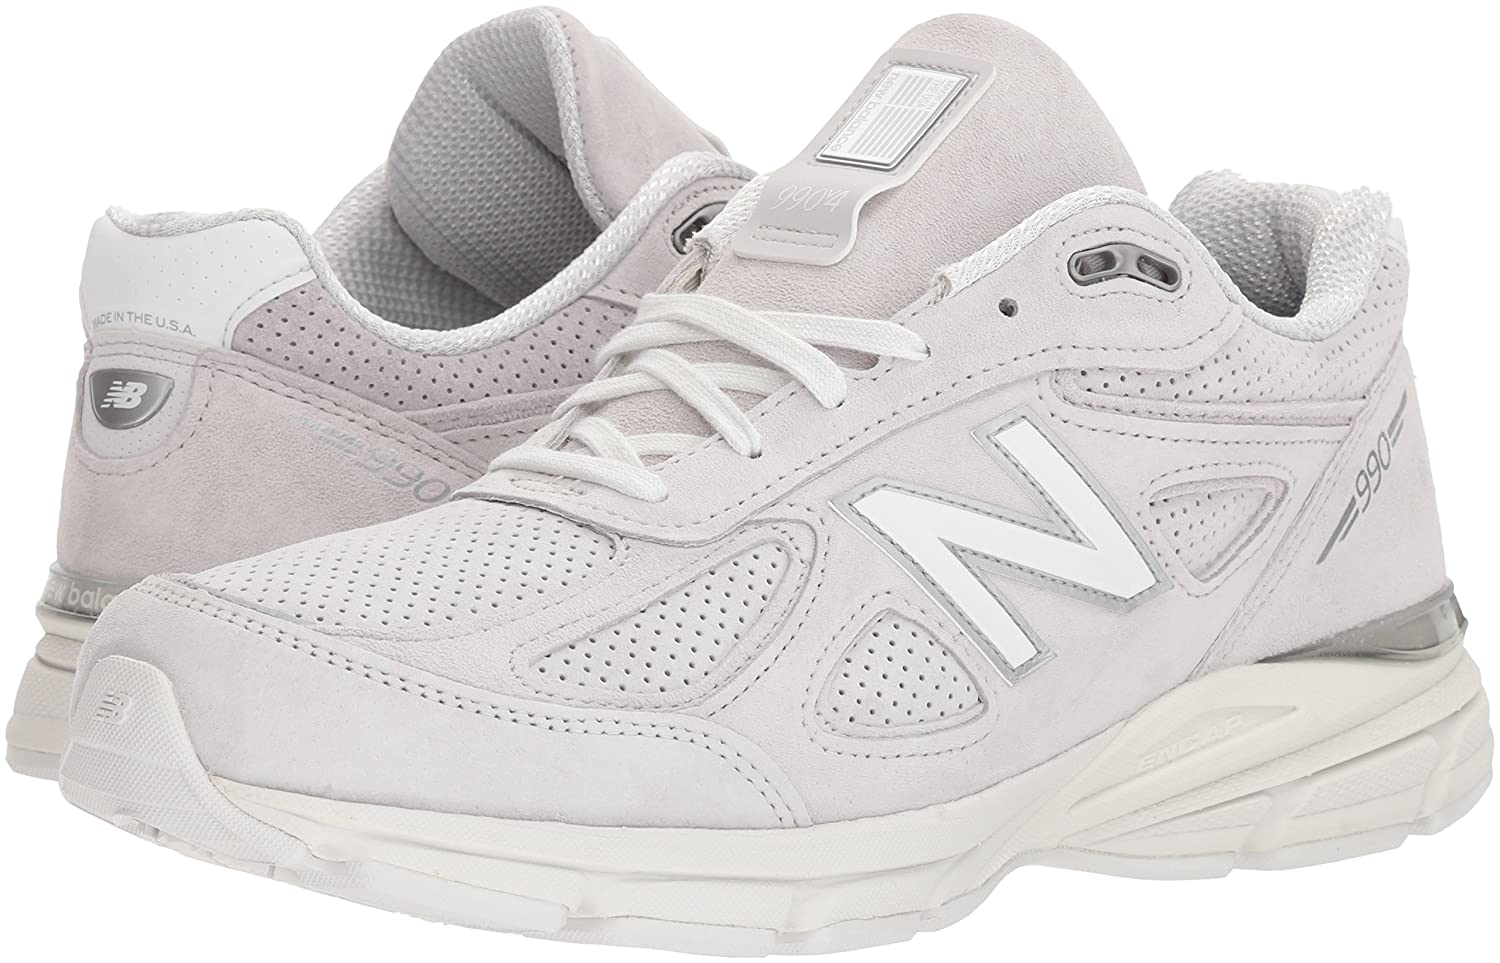 New-Balance-990-990v4-Classicc-Retro-Fashion-Sneaker-Made-in-USA thumbnail 15